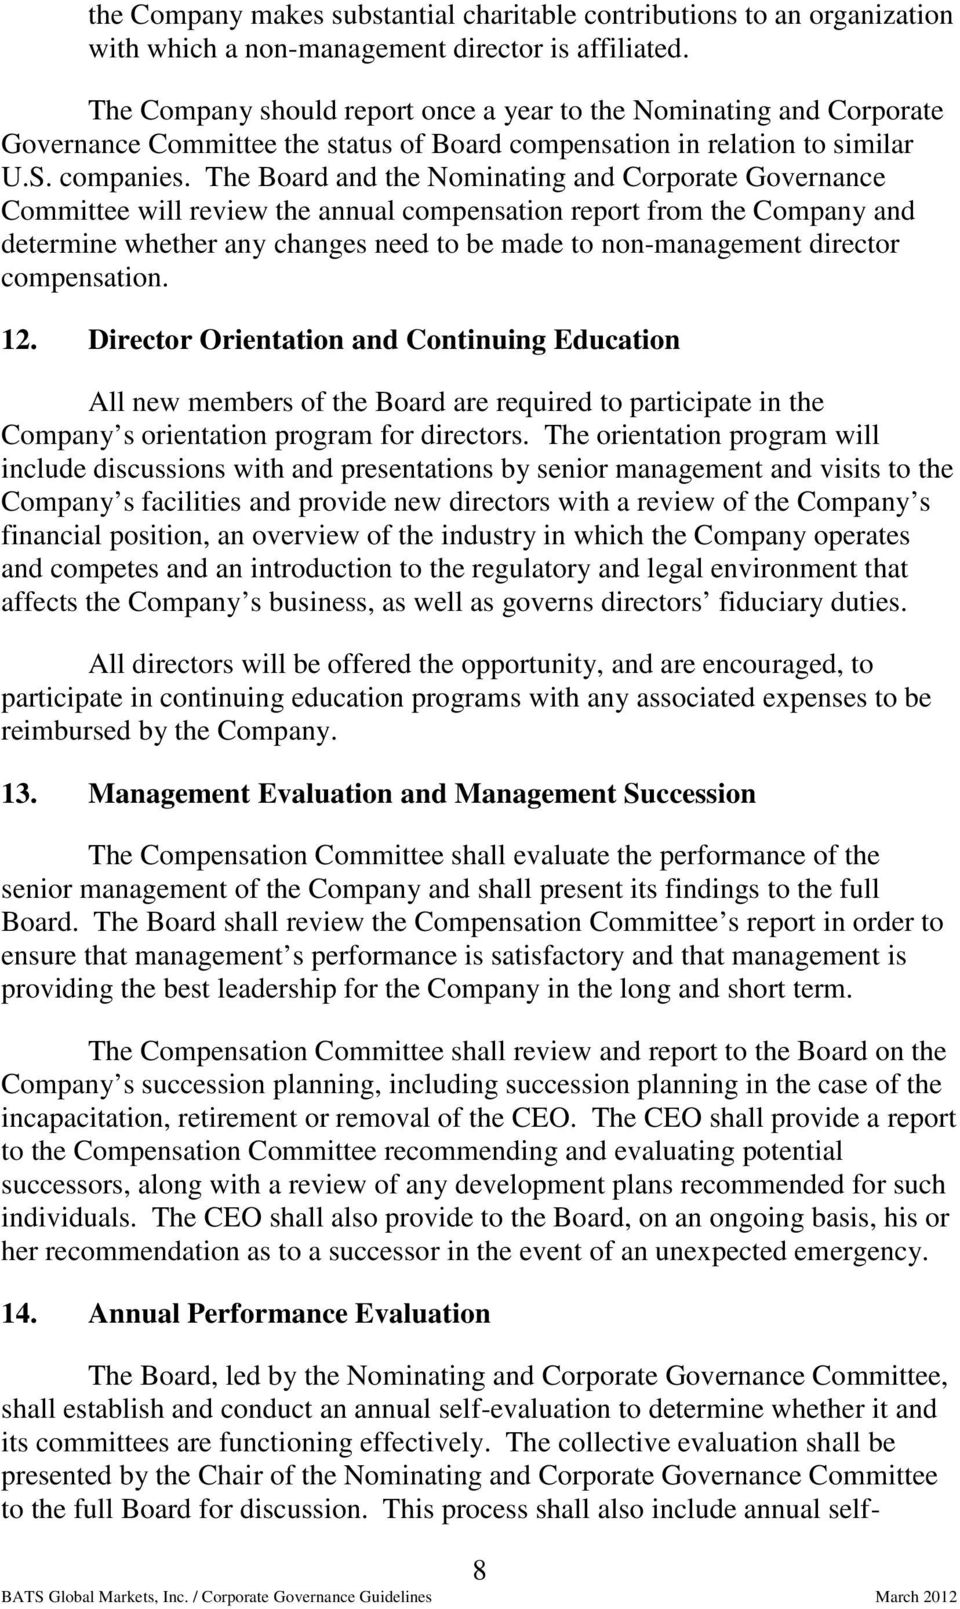 The Board and the Nominating and Corporate Governance Committee will review the annual compensation report from the Company and determine whether any changes need to be made to non-management